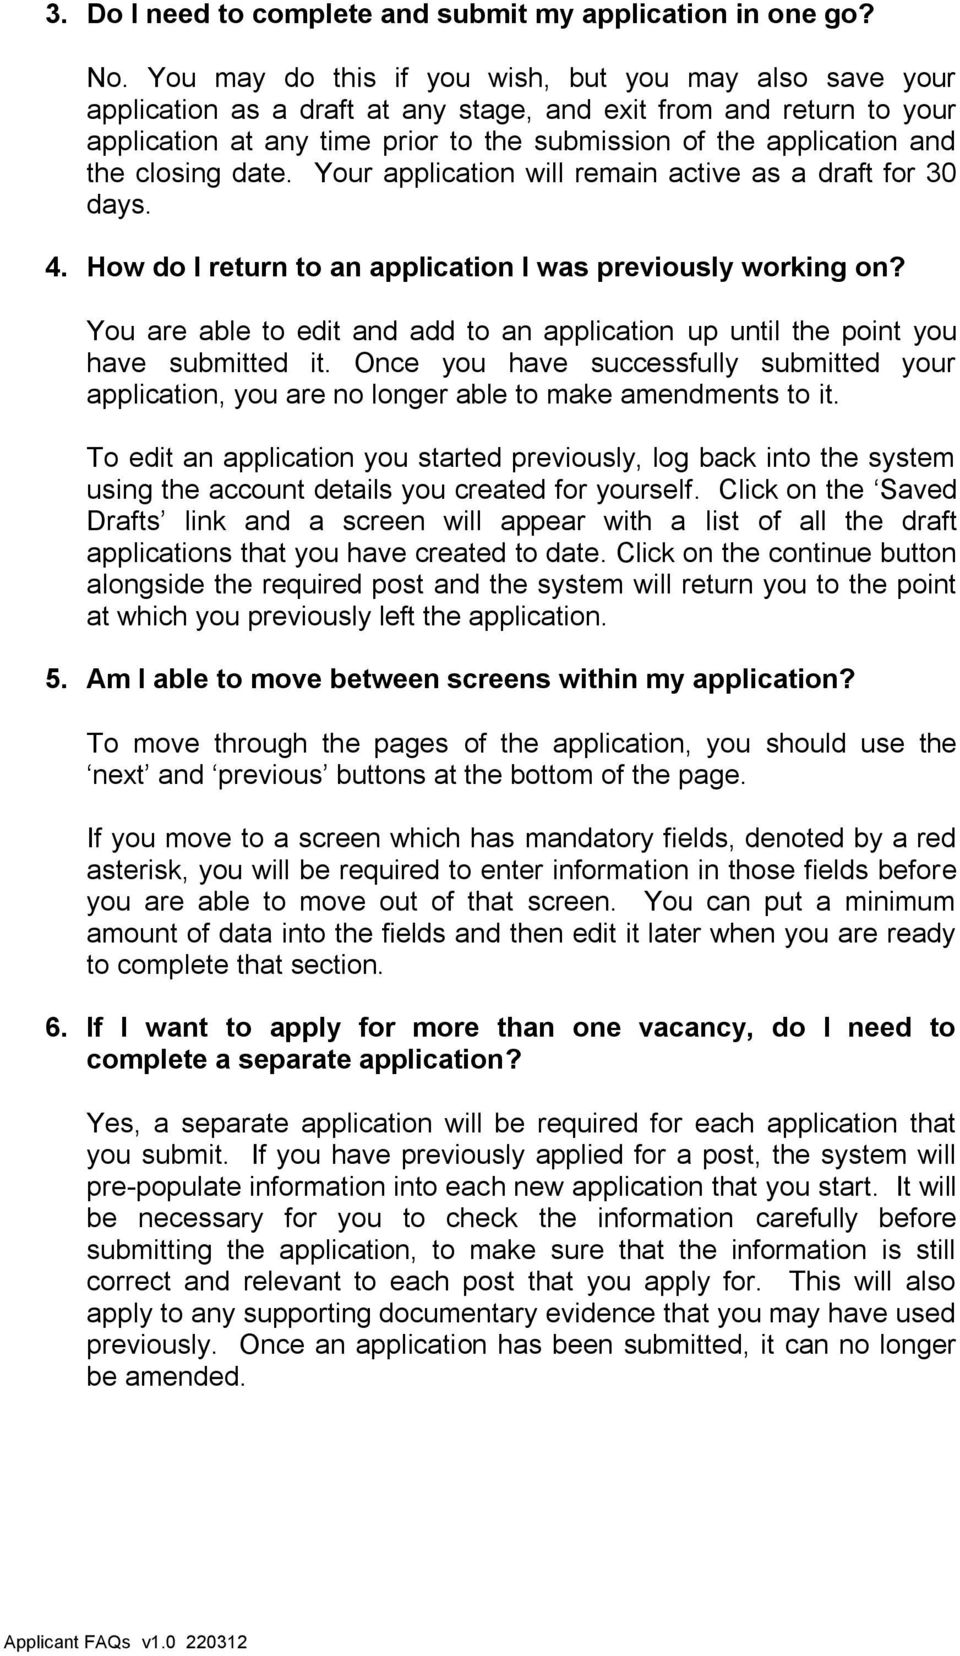 the closing date. Your application will remain active as a draft for 30 days. 4. How do I return to an application I was previously working on?